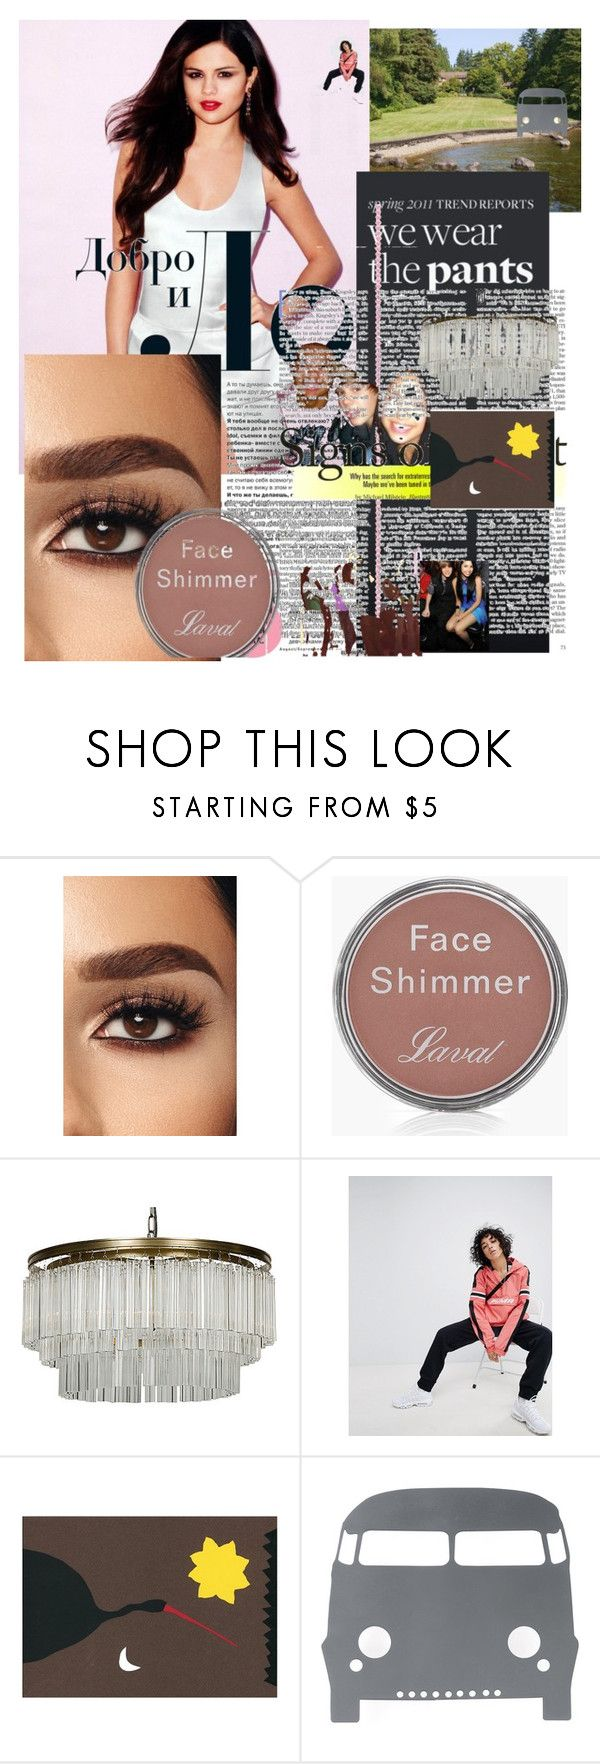 """""""Bet ad in e"""" by polyvo-268 ❤ liked on Polyvore featuring beauty, Boohoo, nOir, Puma, ferm LIVING, Justin Bieber and Jennifer Lopez"""